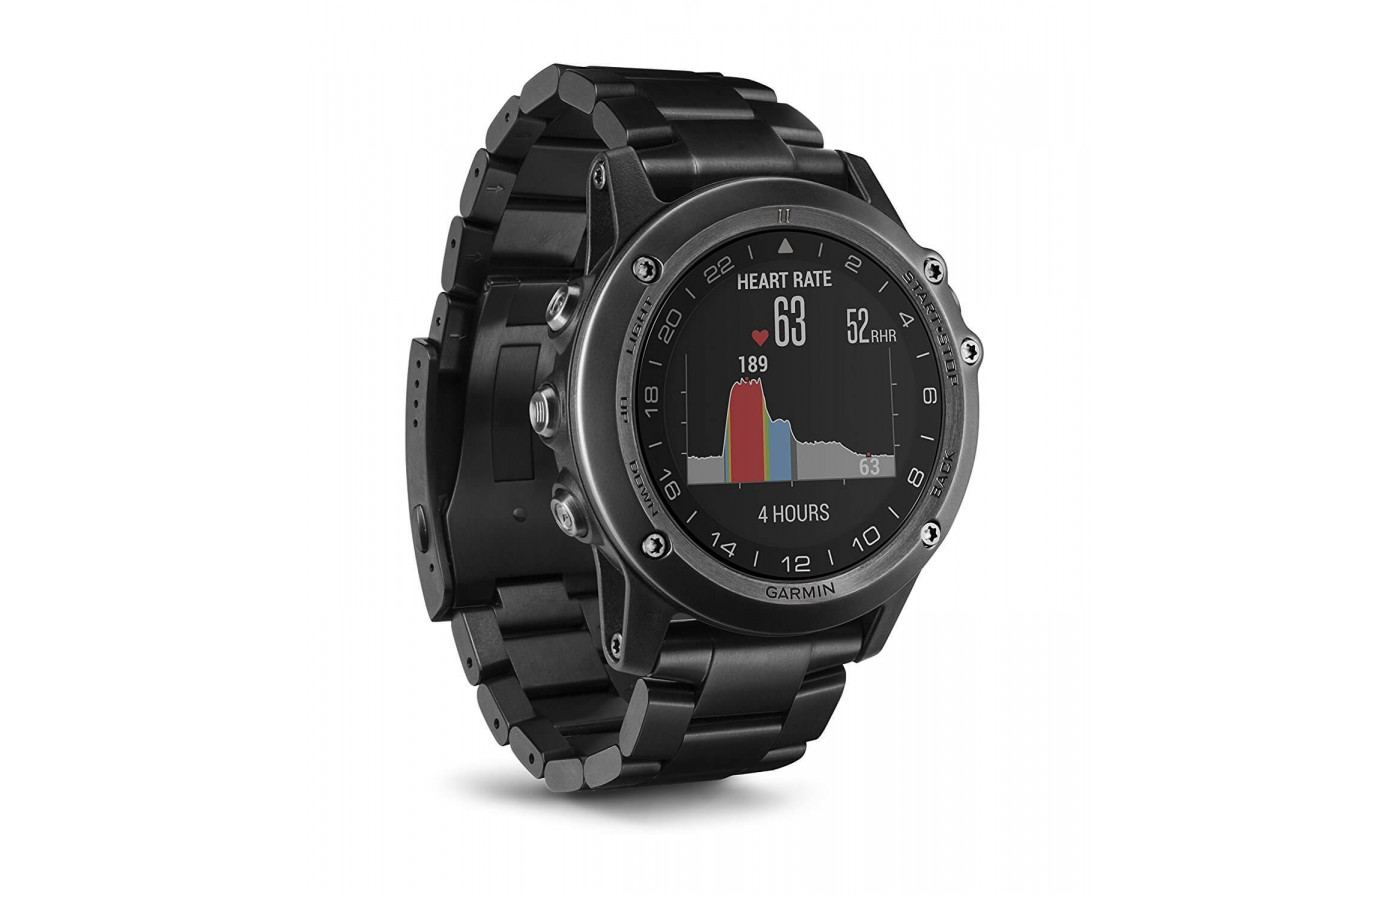 The Garmin D2 Bravo is Bluetooth Smart, ANT+, and WIFI enabled